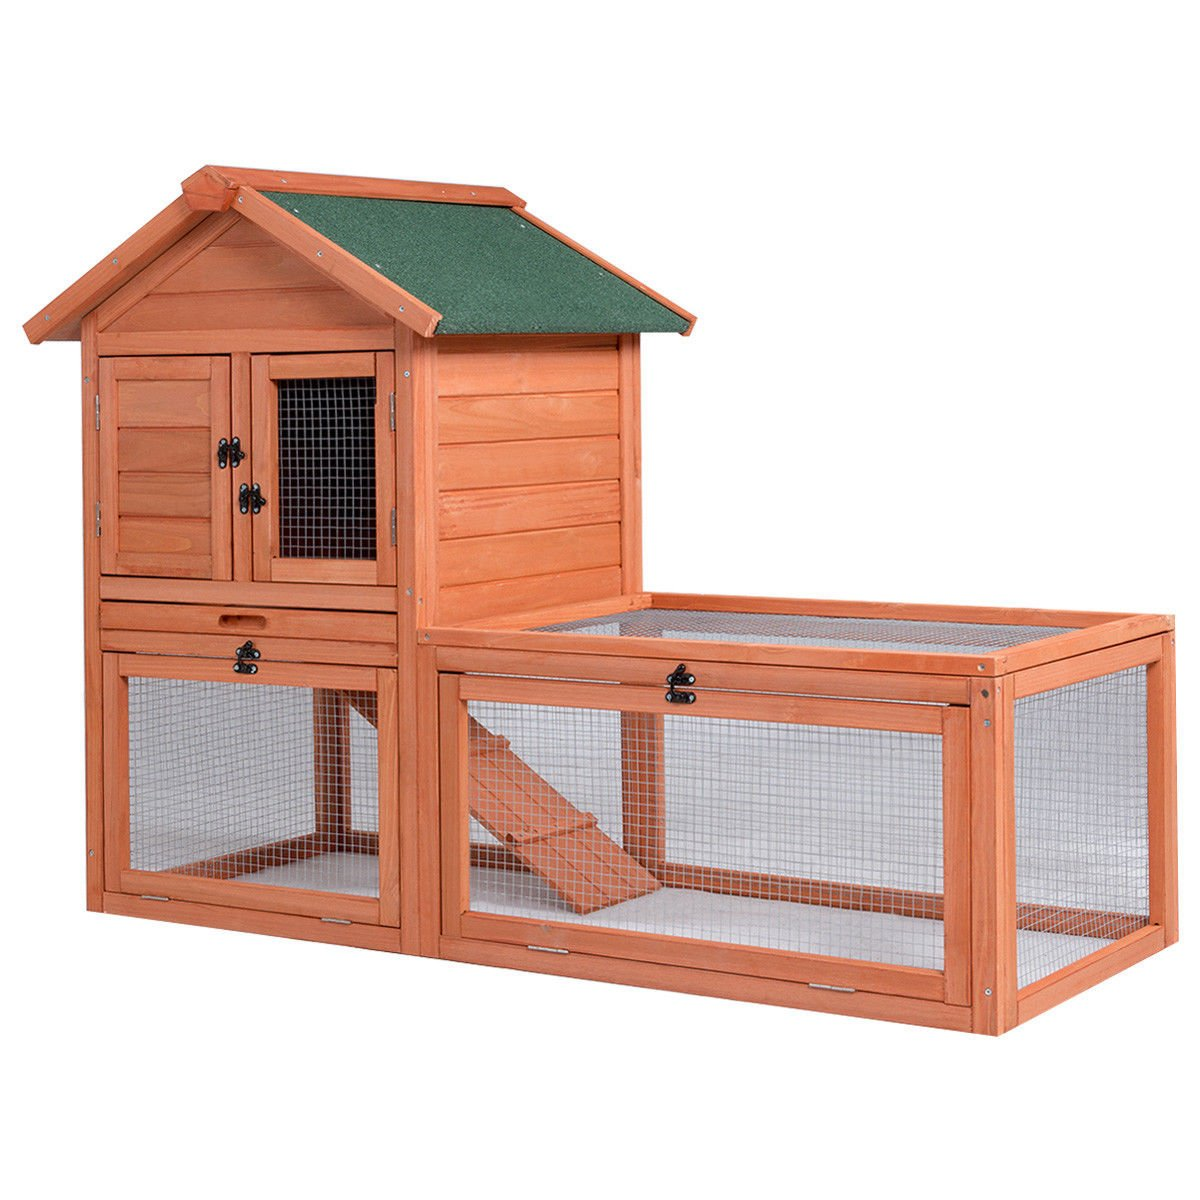 Tangkula Chicken Coop Wooden Garden Backyard Bunny Small Animal Hen Cage Rabbit Hutch with Run by Tangkula